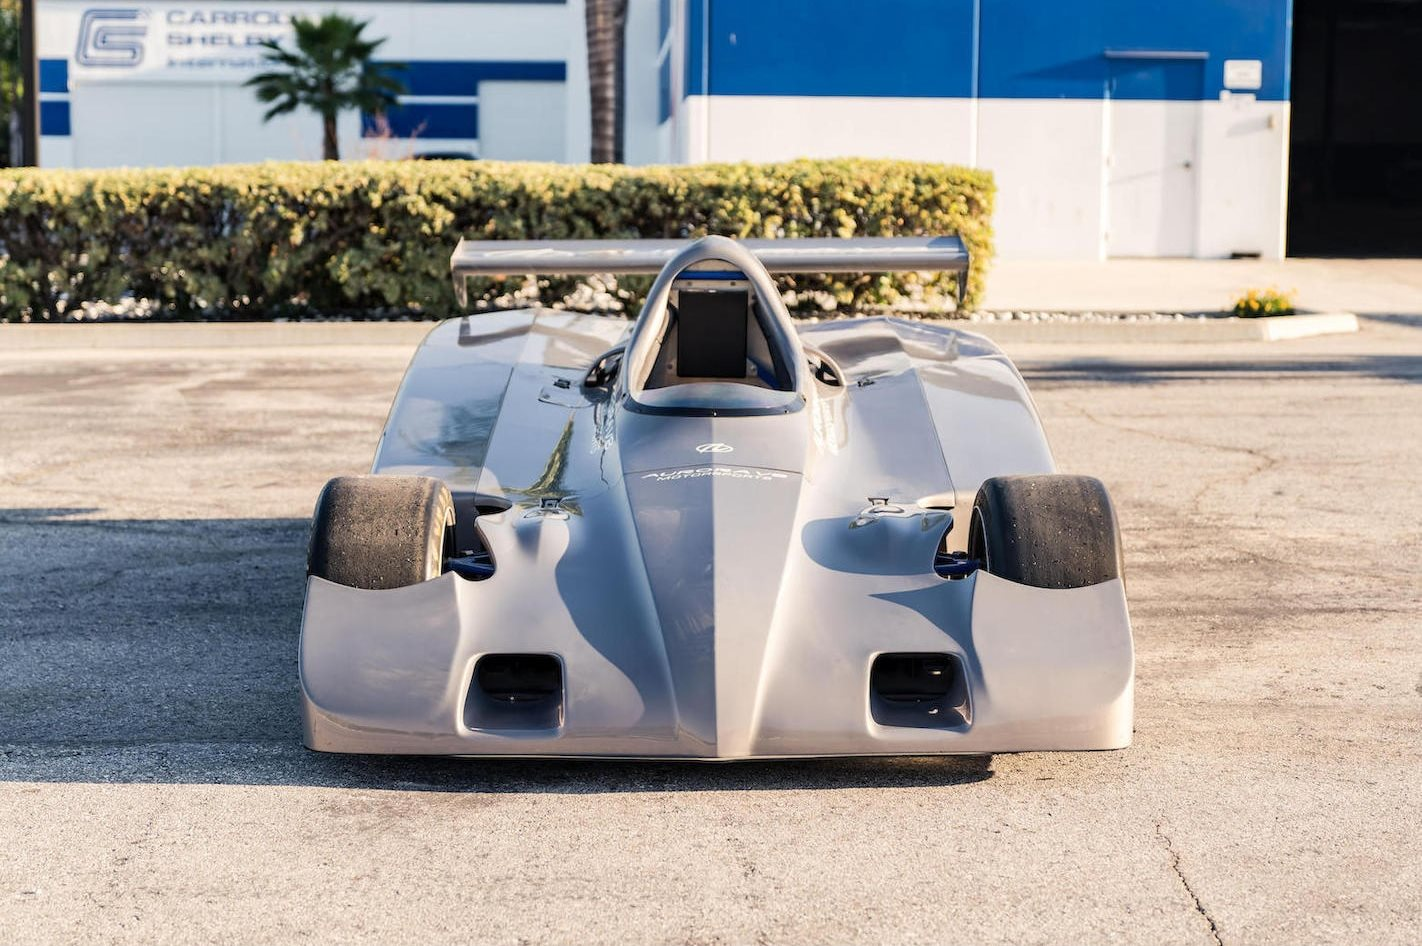 1997 Shelby Helby Aurora V8 Can-Am (4)